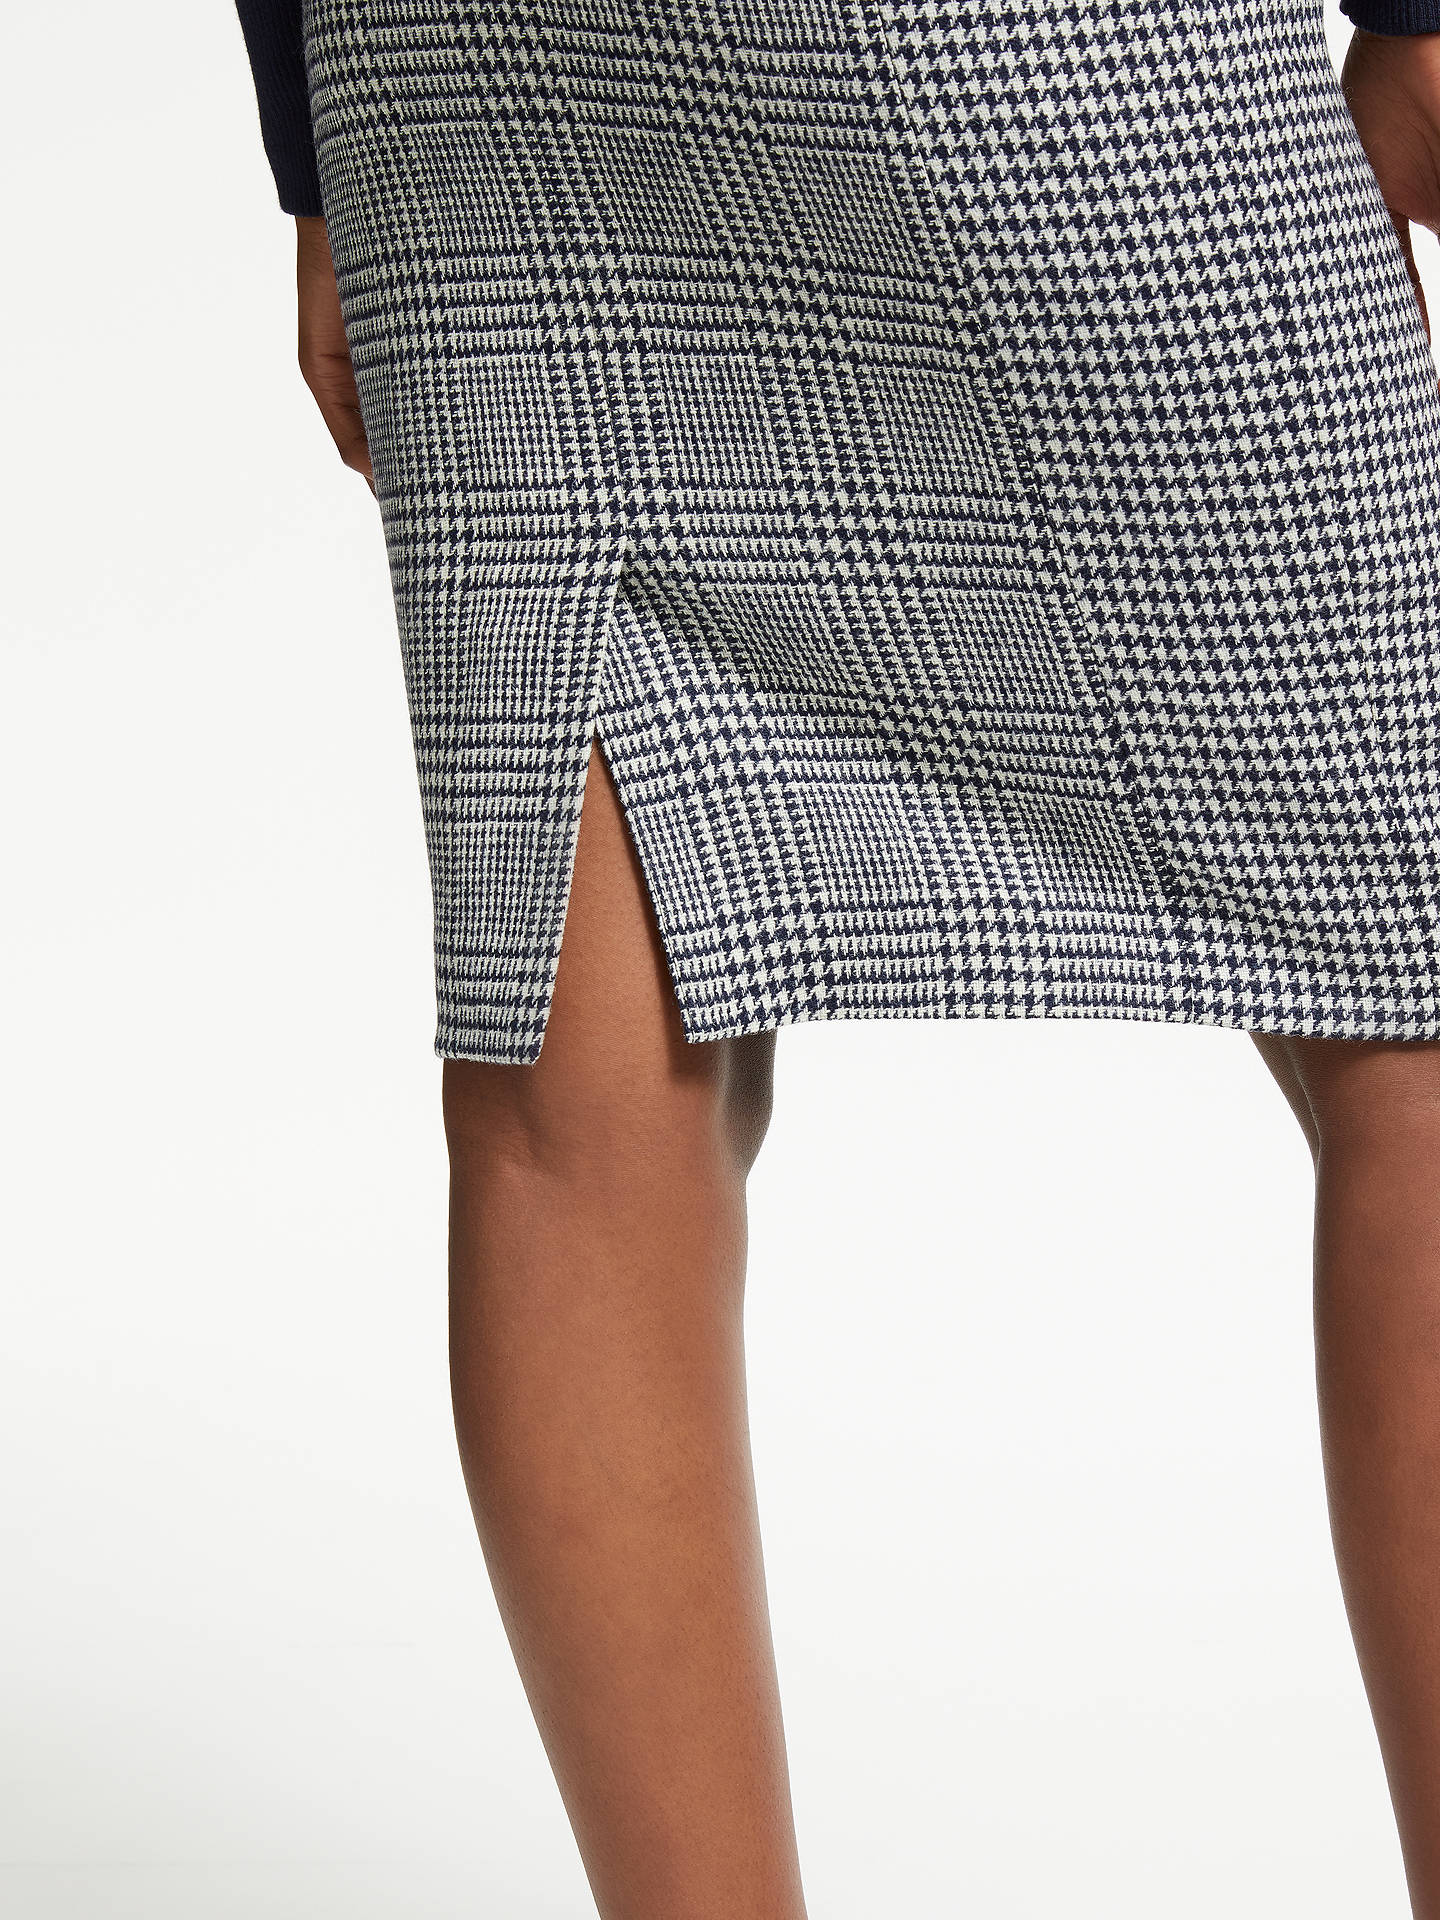 BuyBoden Tweed Pencil Skirt, Navy and Ivory, 10 Online at johnlewis.com